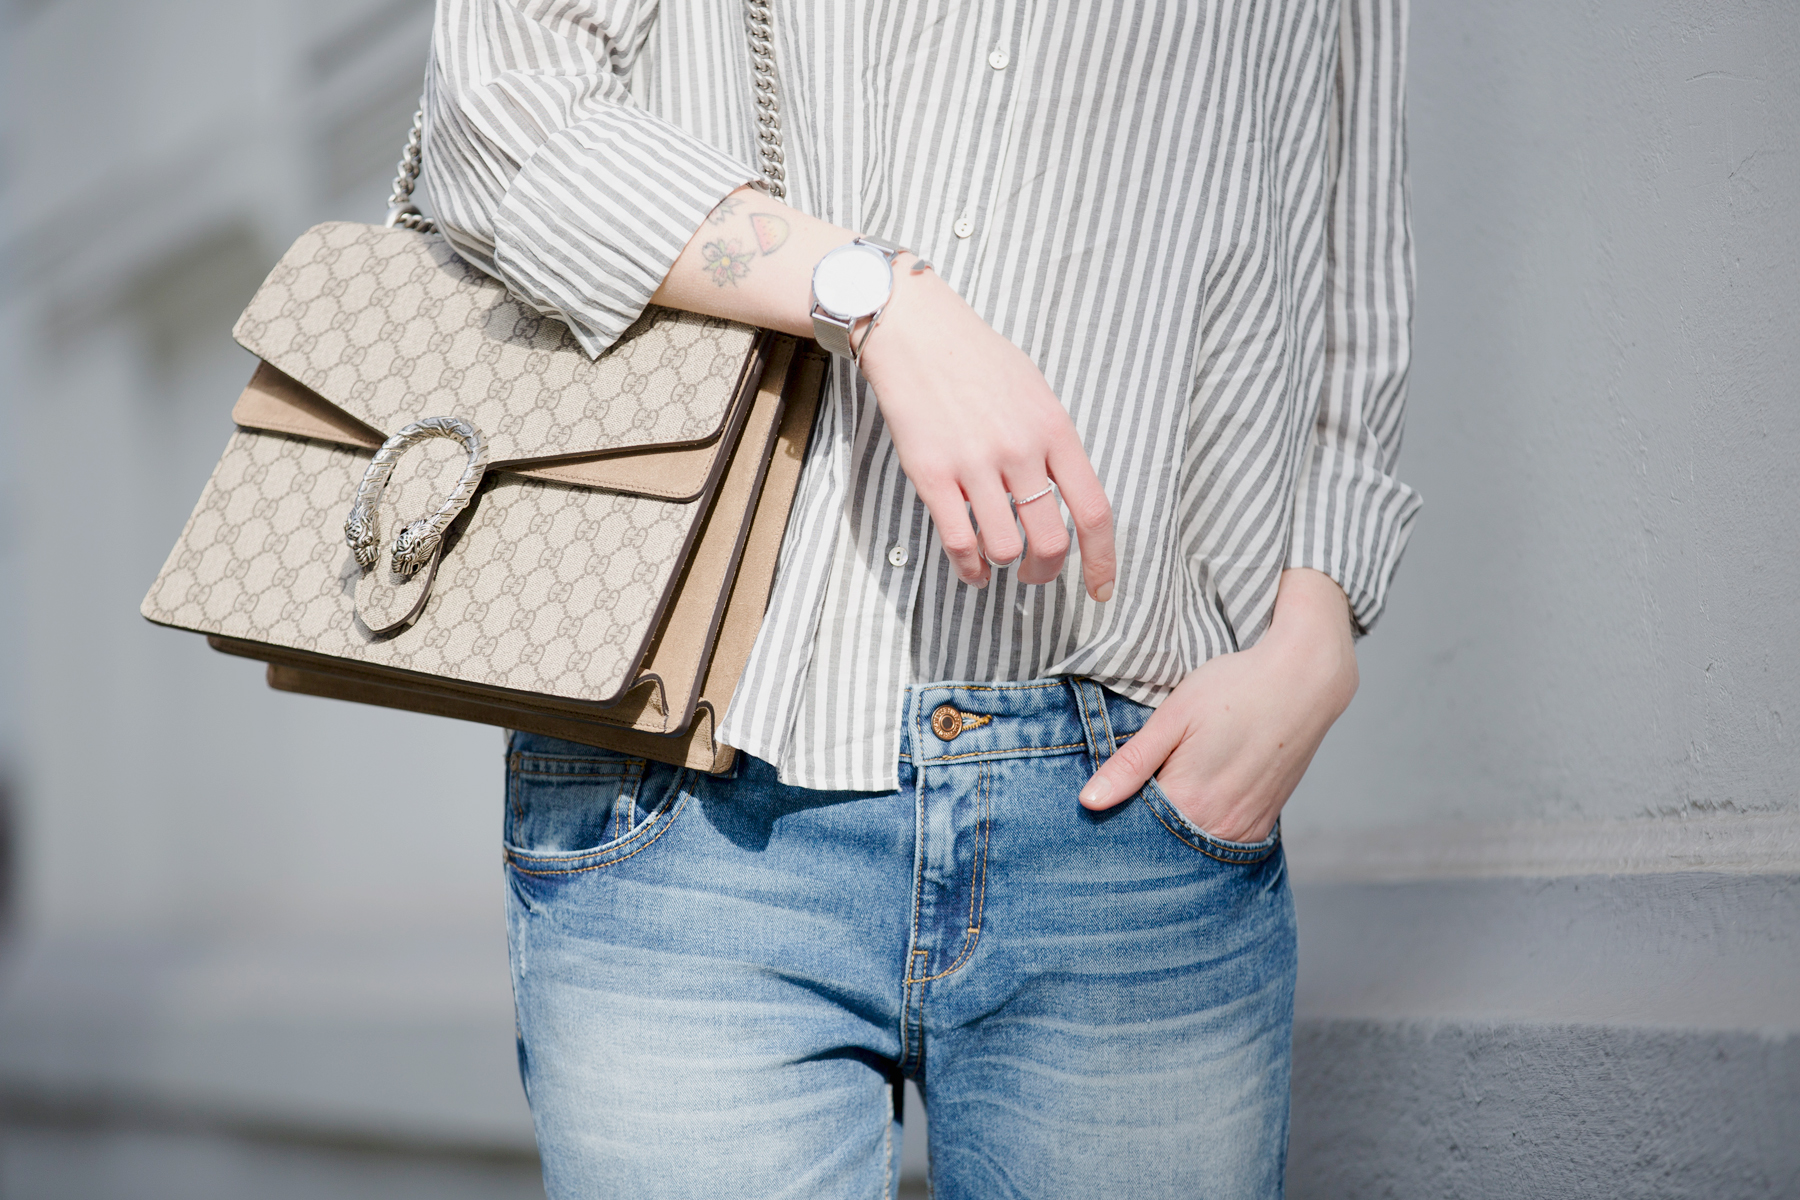 francaise striped shirt parisienne style bangs brunette jeans chanel lookalike heine pumps chic luxury gucci dionysus bag sun spring outfit ootd look le specs fashionblogger ricarda schernus cats & dogs blog 3